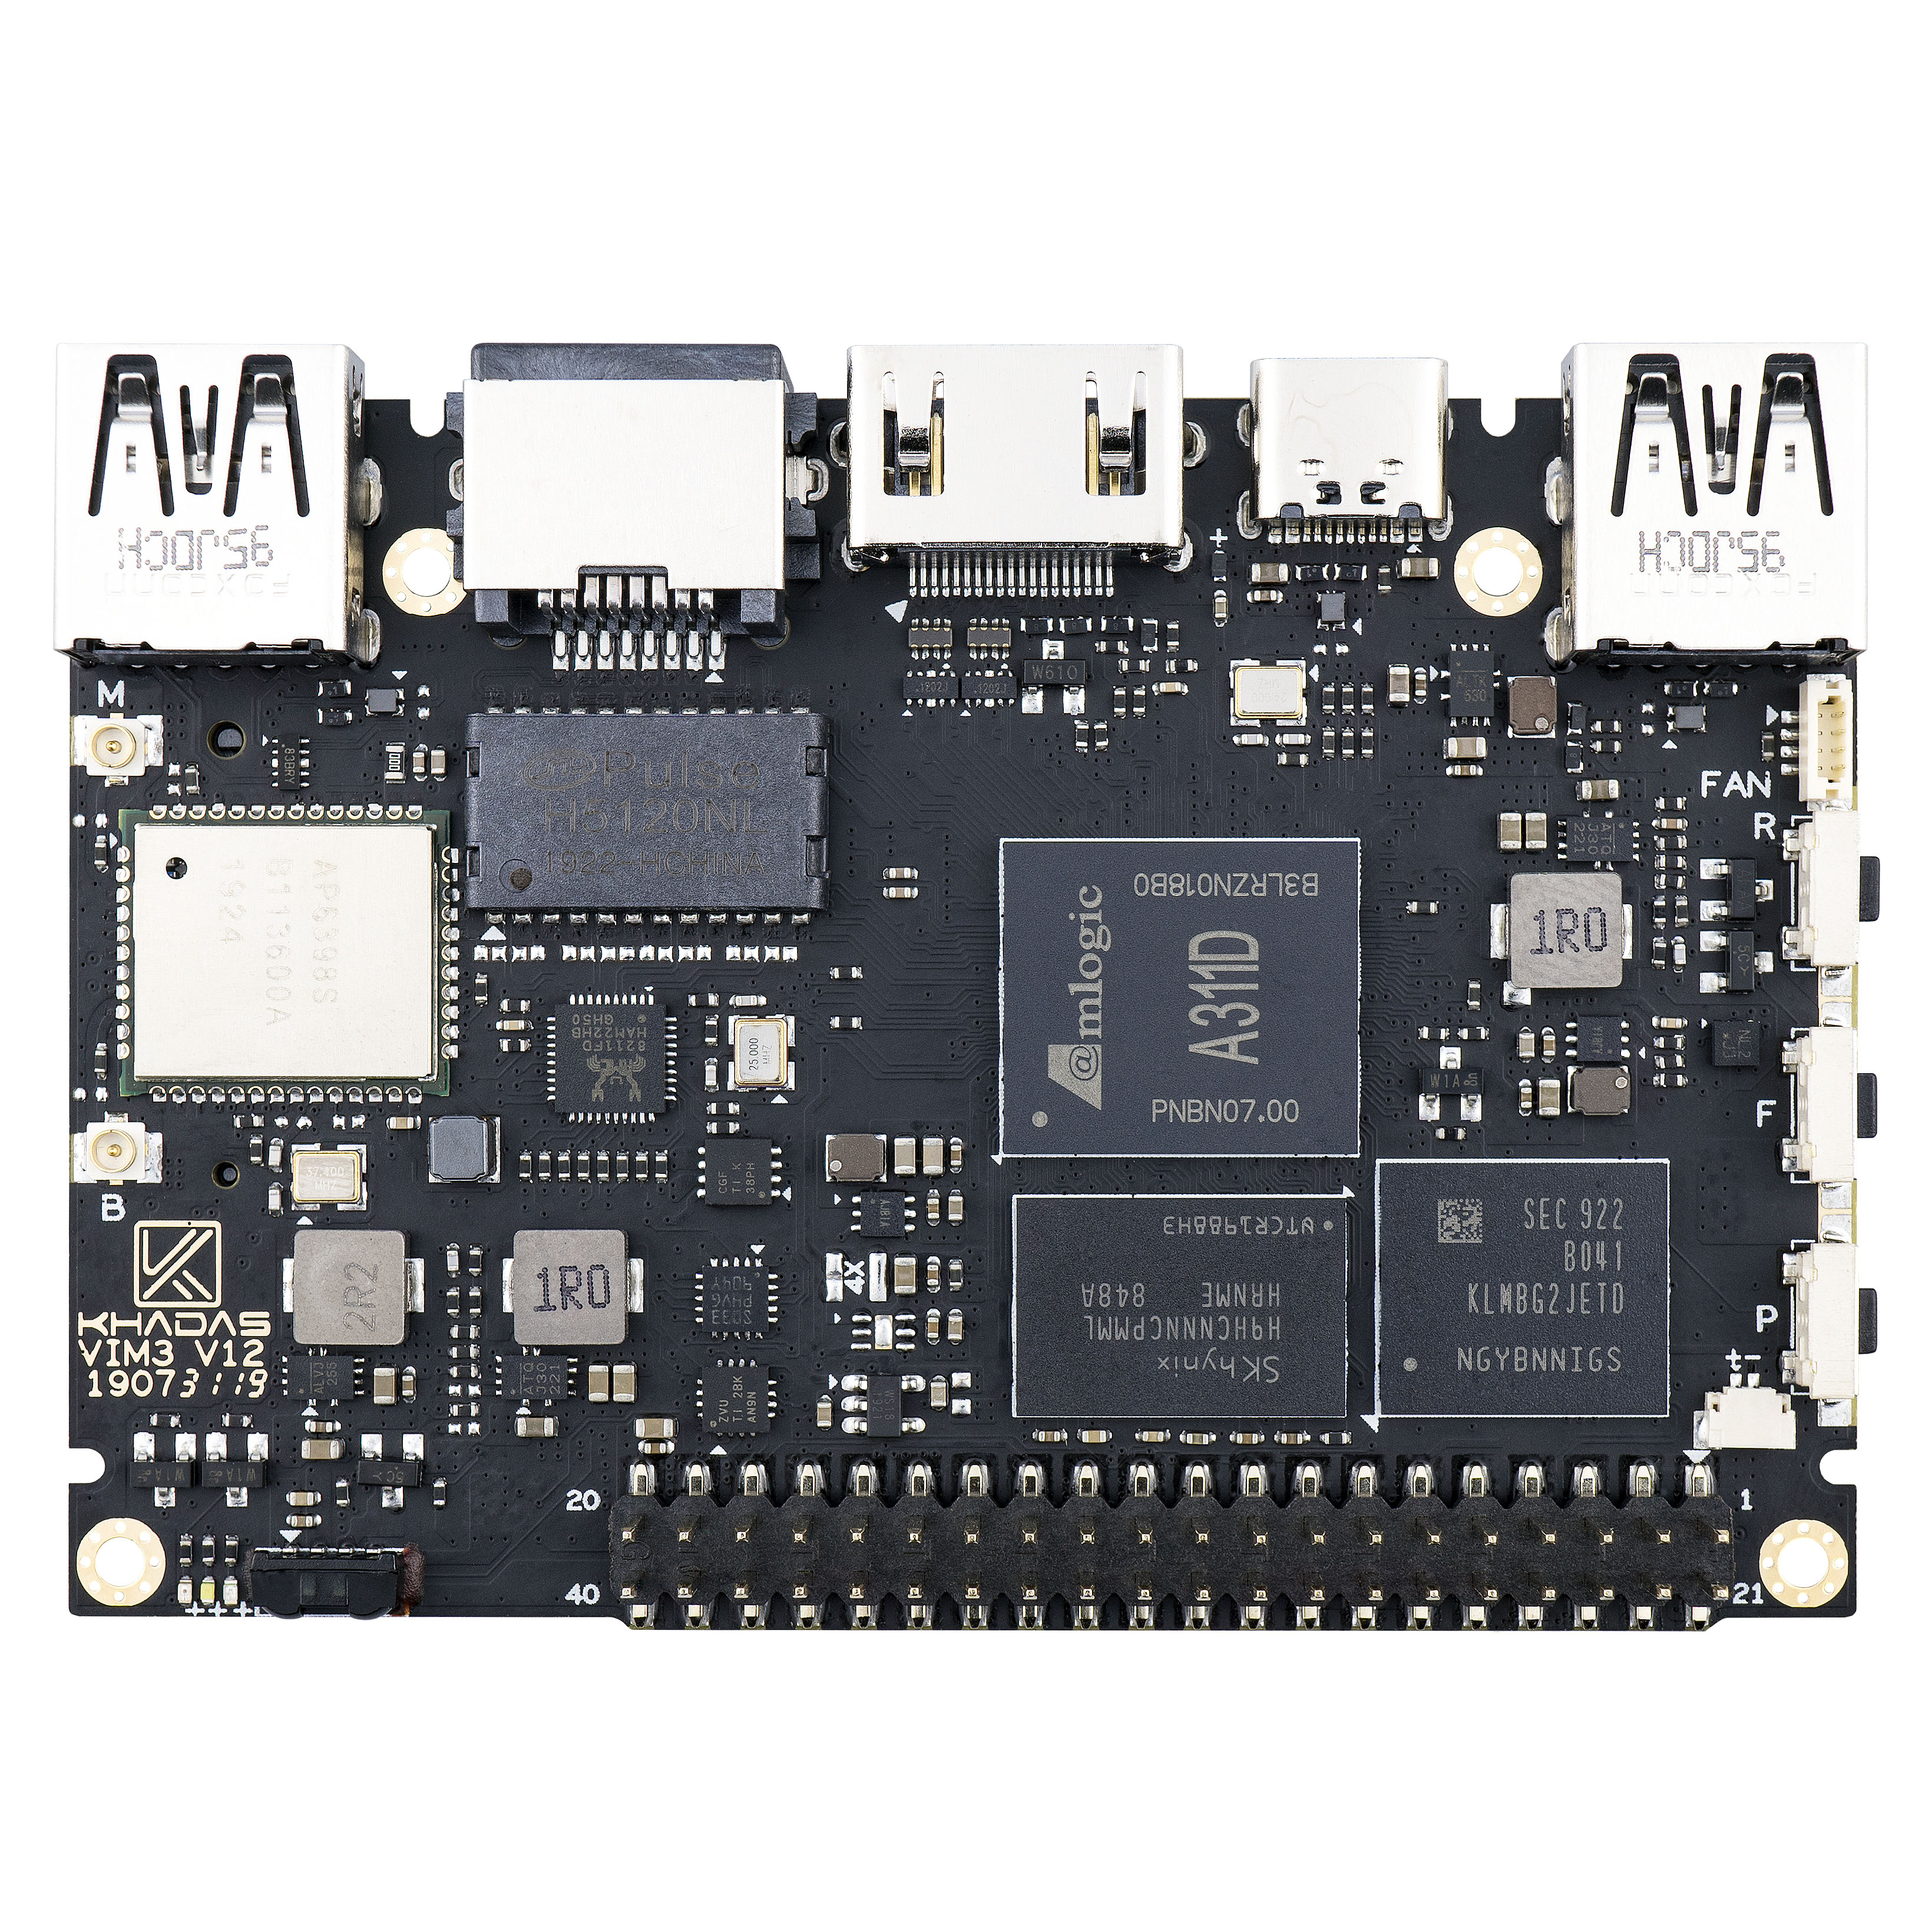 2019 Most Powerful Single Board Computer With 4GB LPDDR4/4X + 32GB EMMC And 5.0 NPU Khadas VIM3 Pro Demo Board image